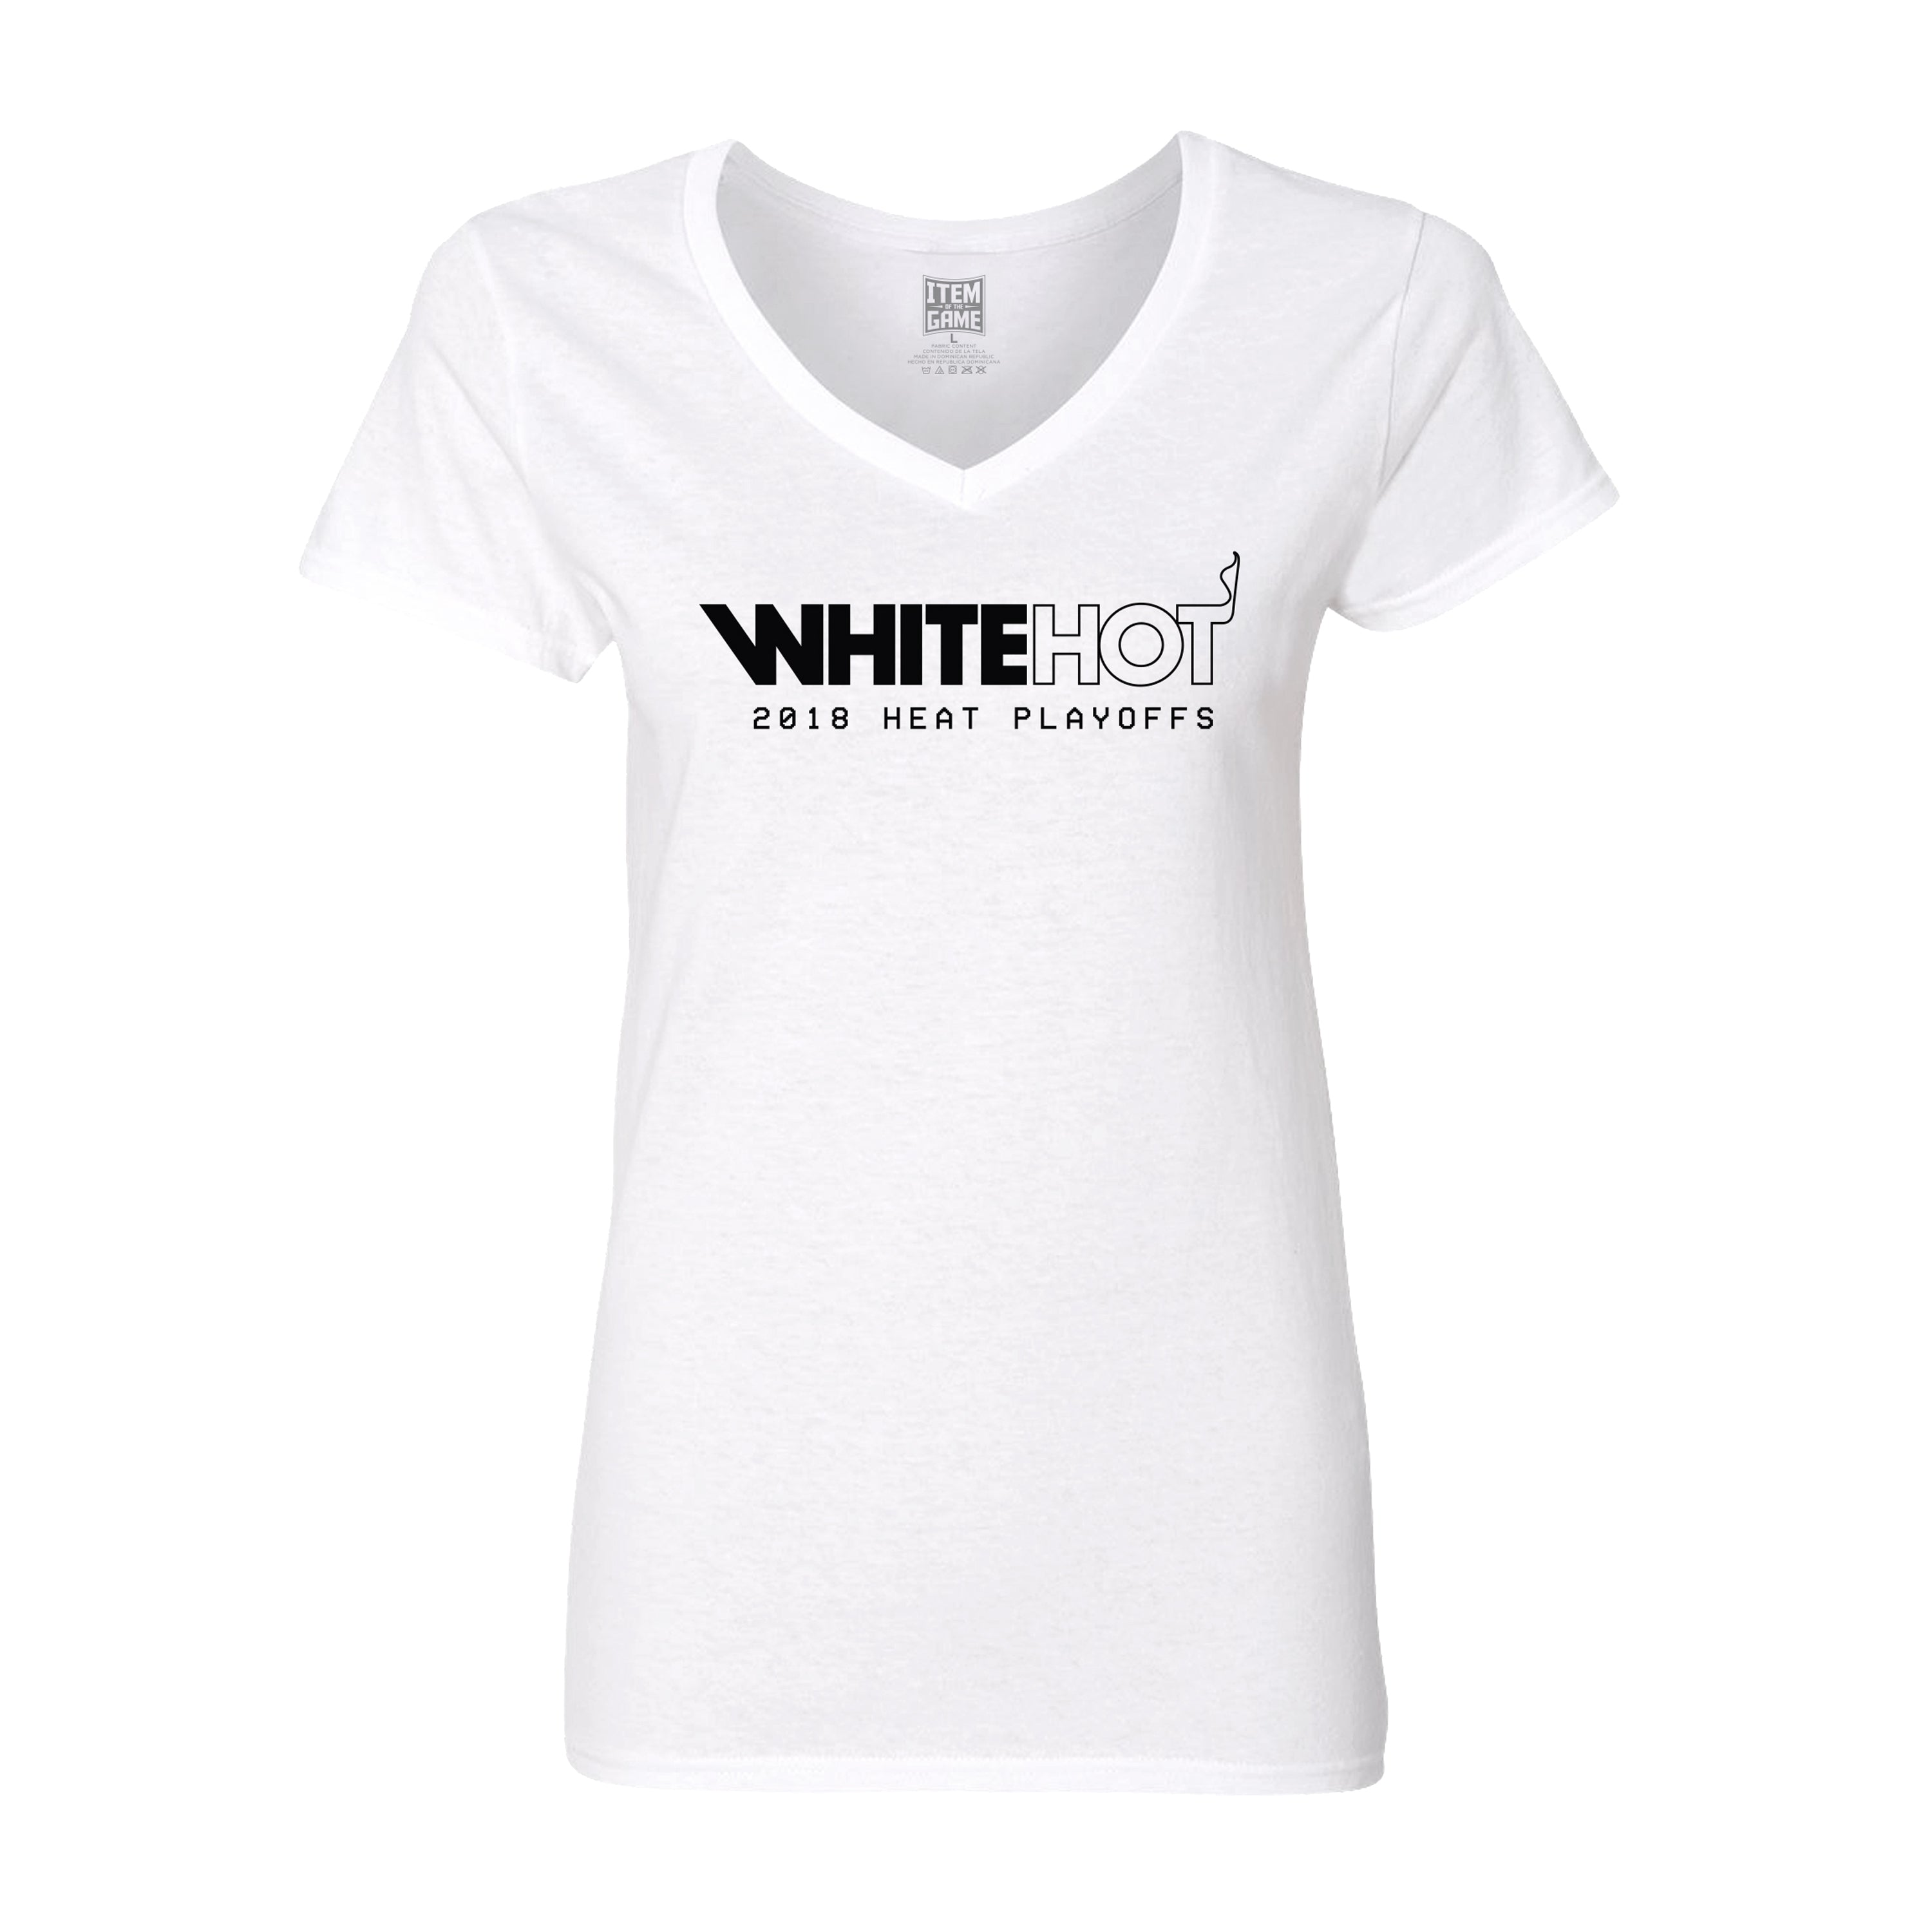 timeless design 1174f 0c23f Miami HEAT Ladies White Hot Playoff Tee